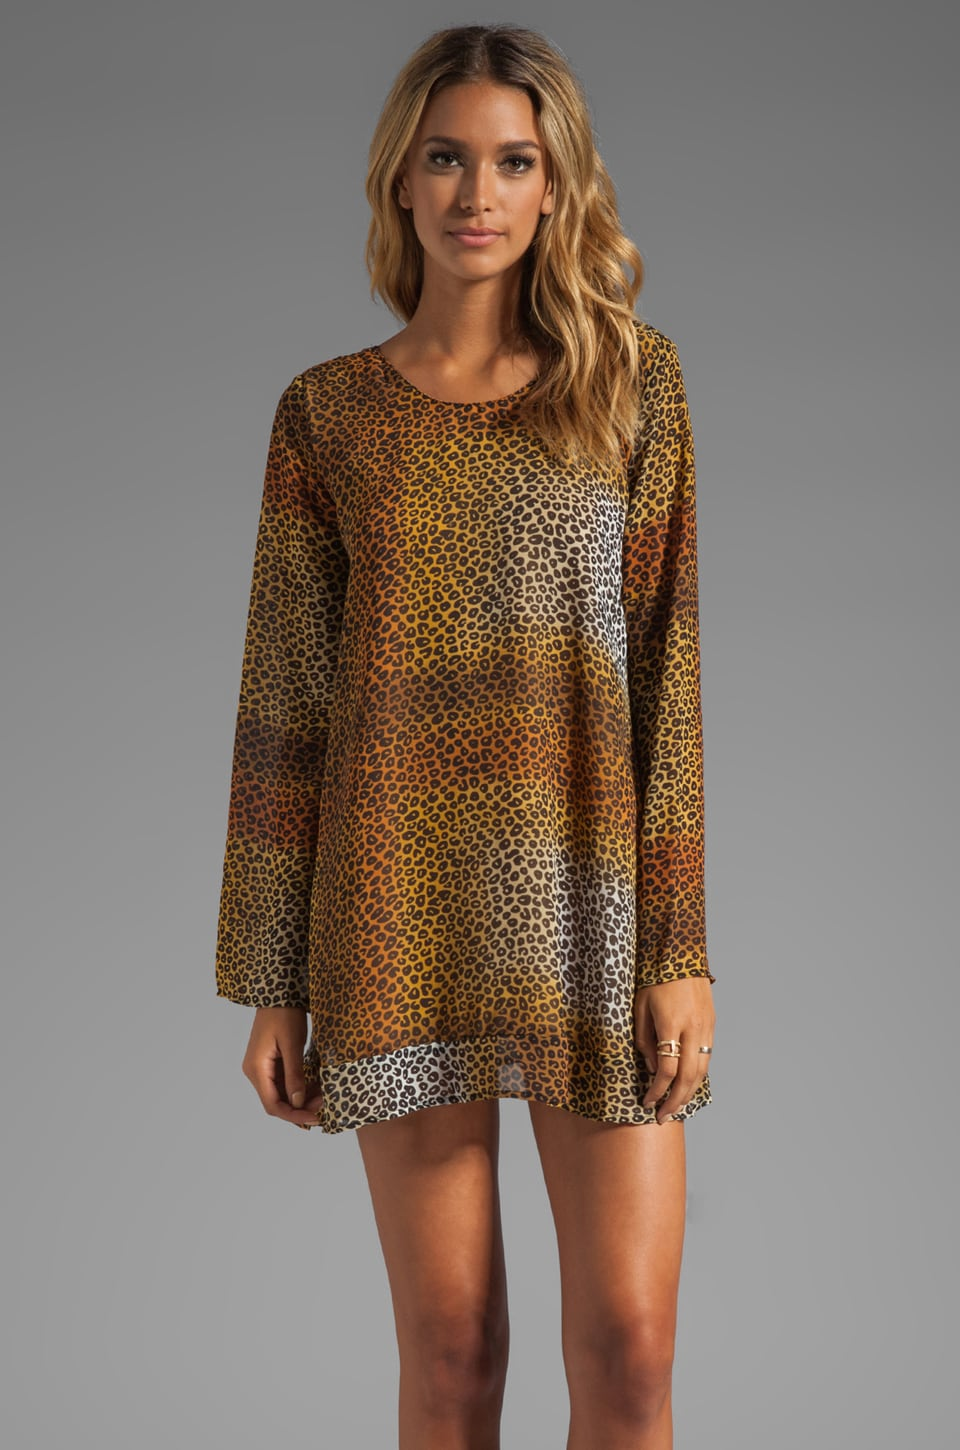 One Teaspoon Long Sleeve Dress in Cheetah